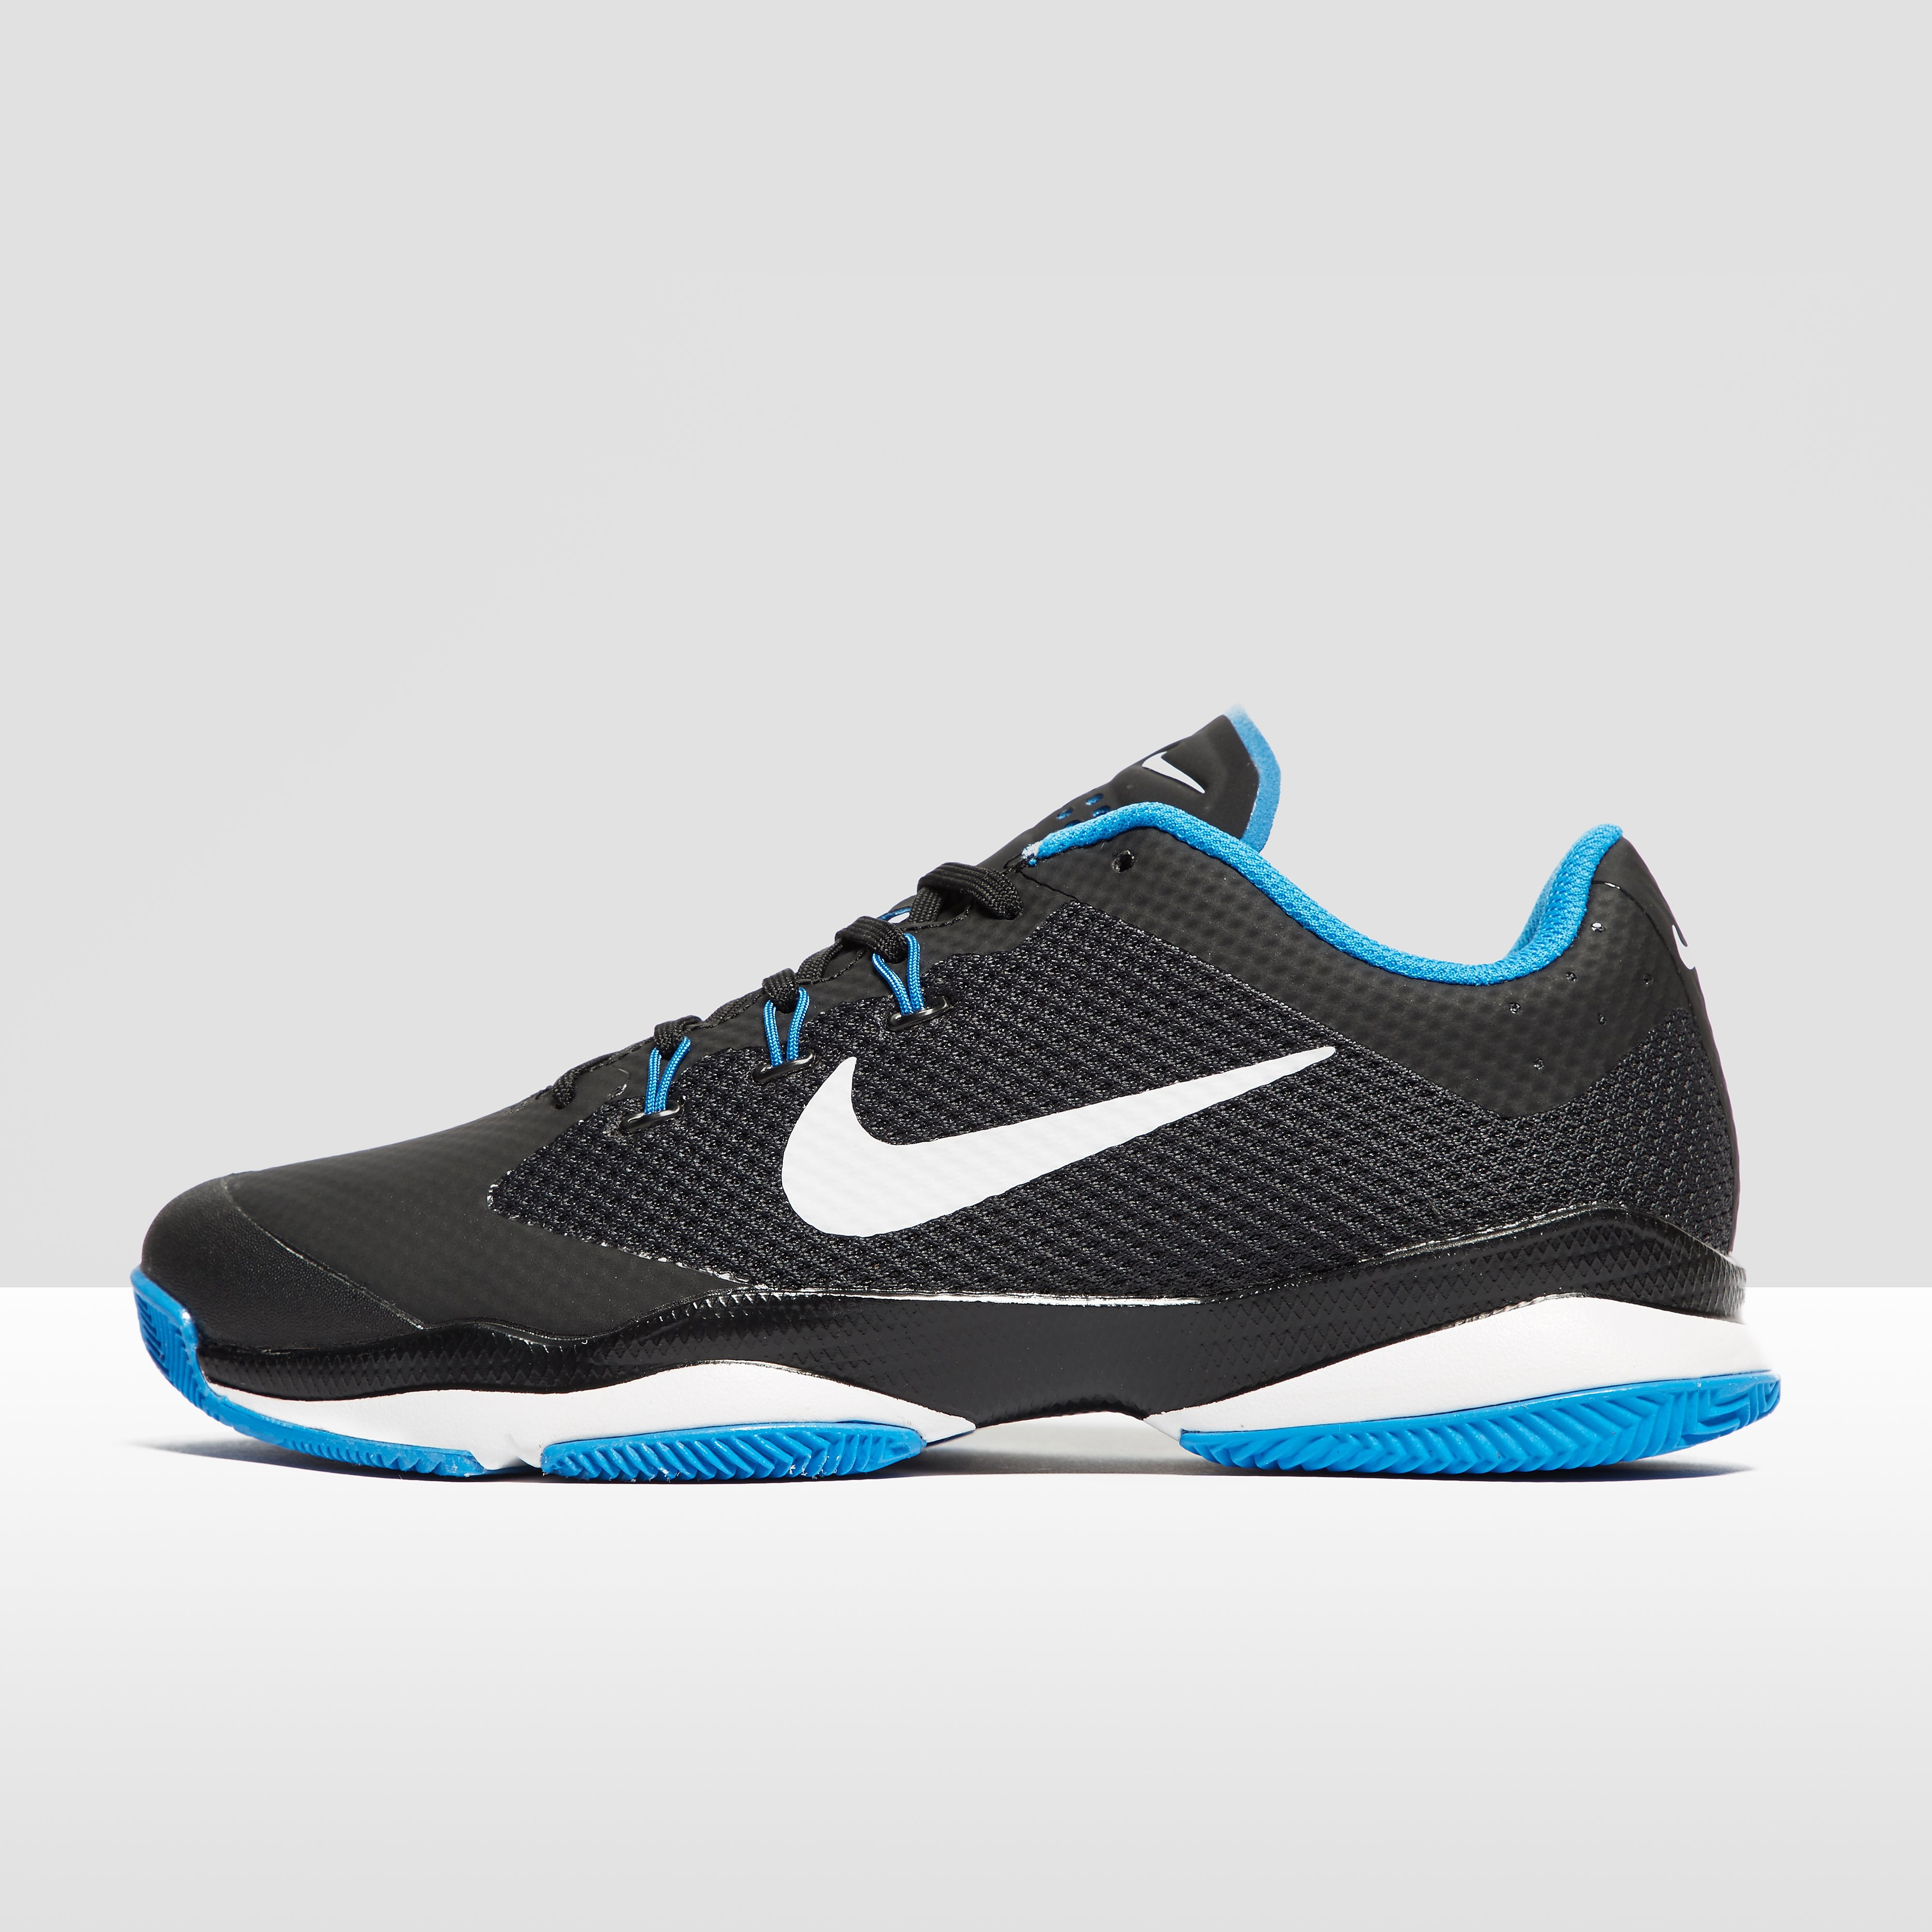 Nike Court Air Zoom Ultra Men's Tennis Shoes